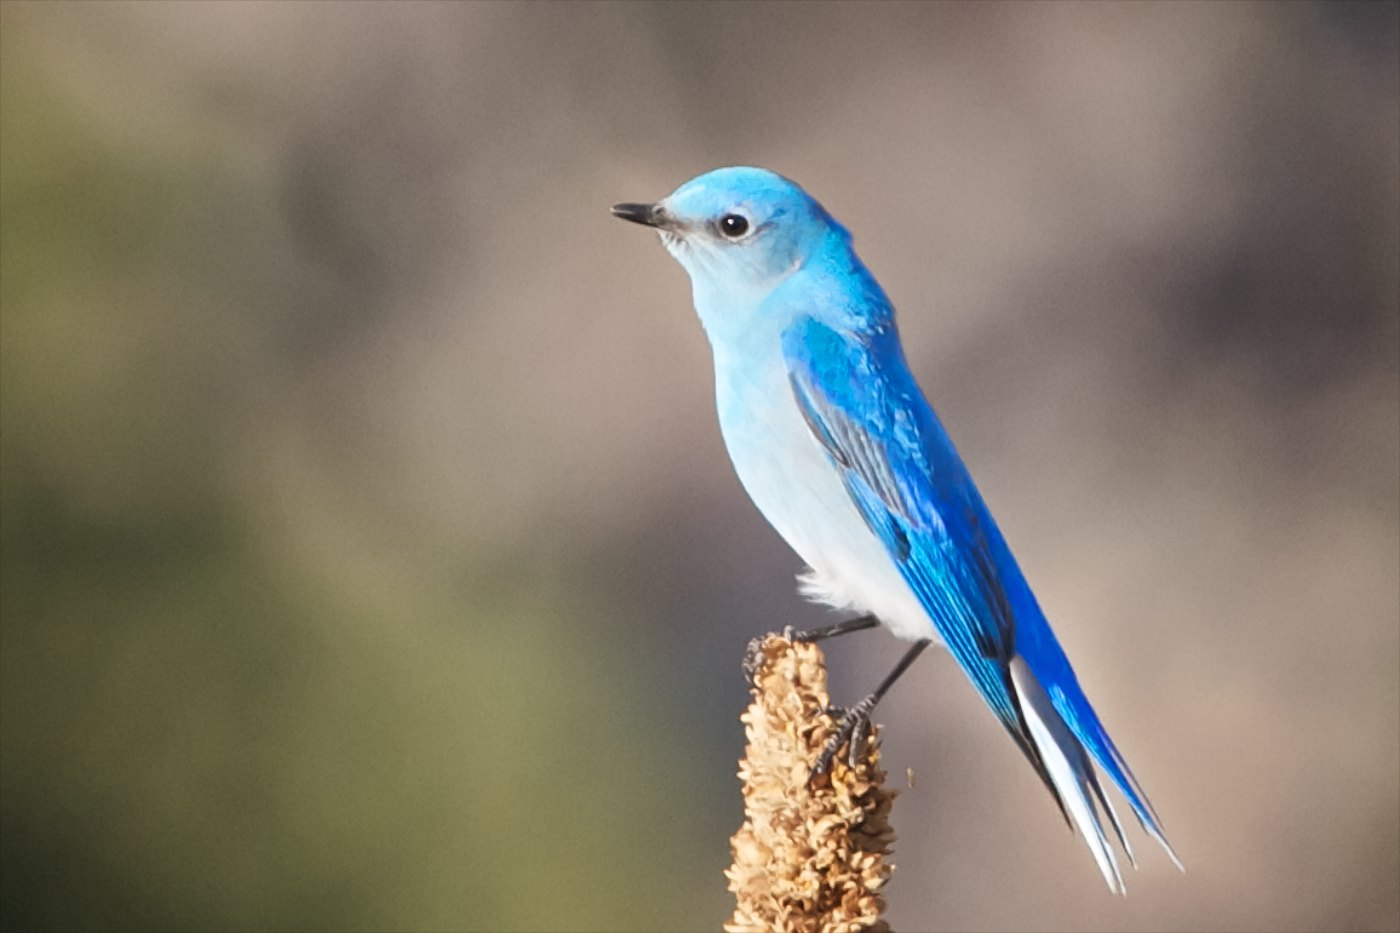 Blue bird - photo#20